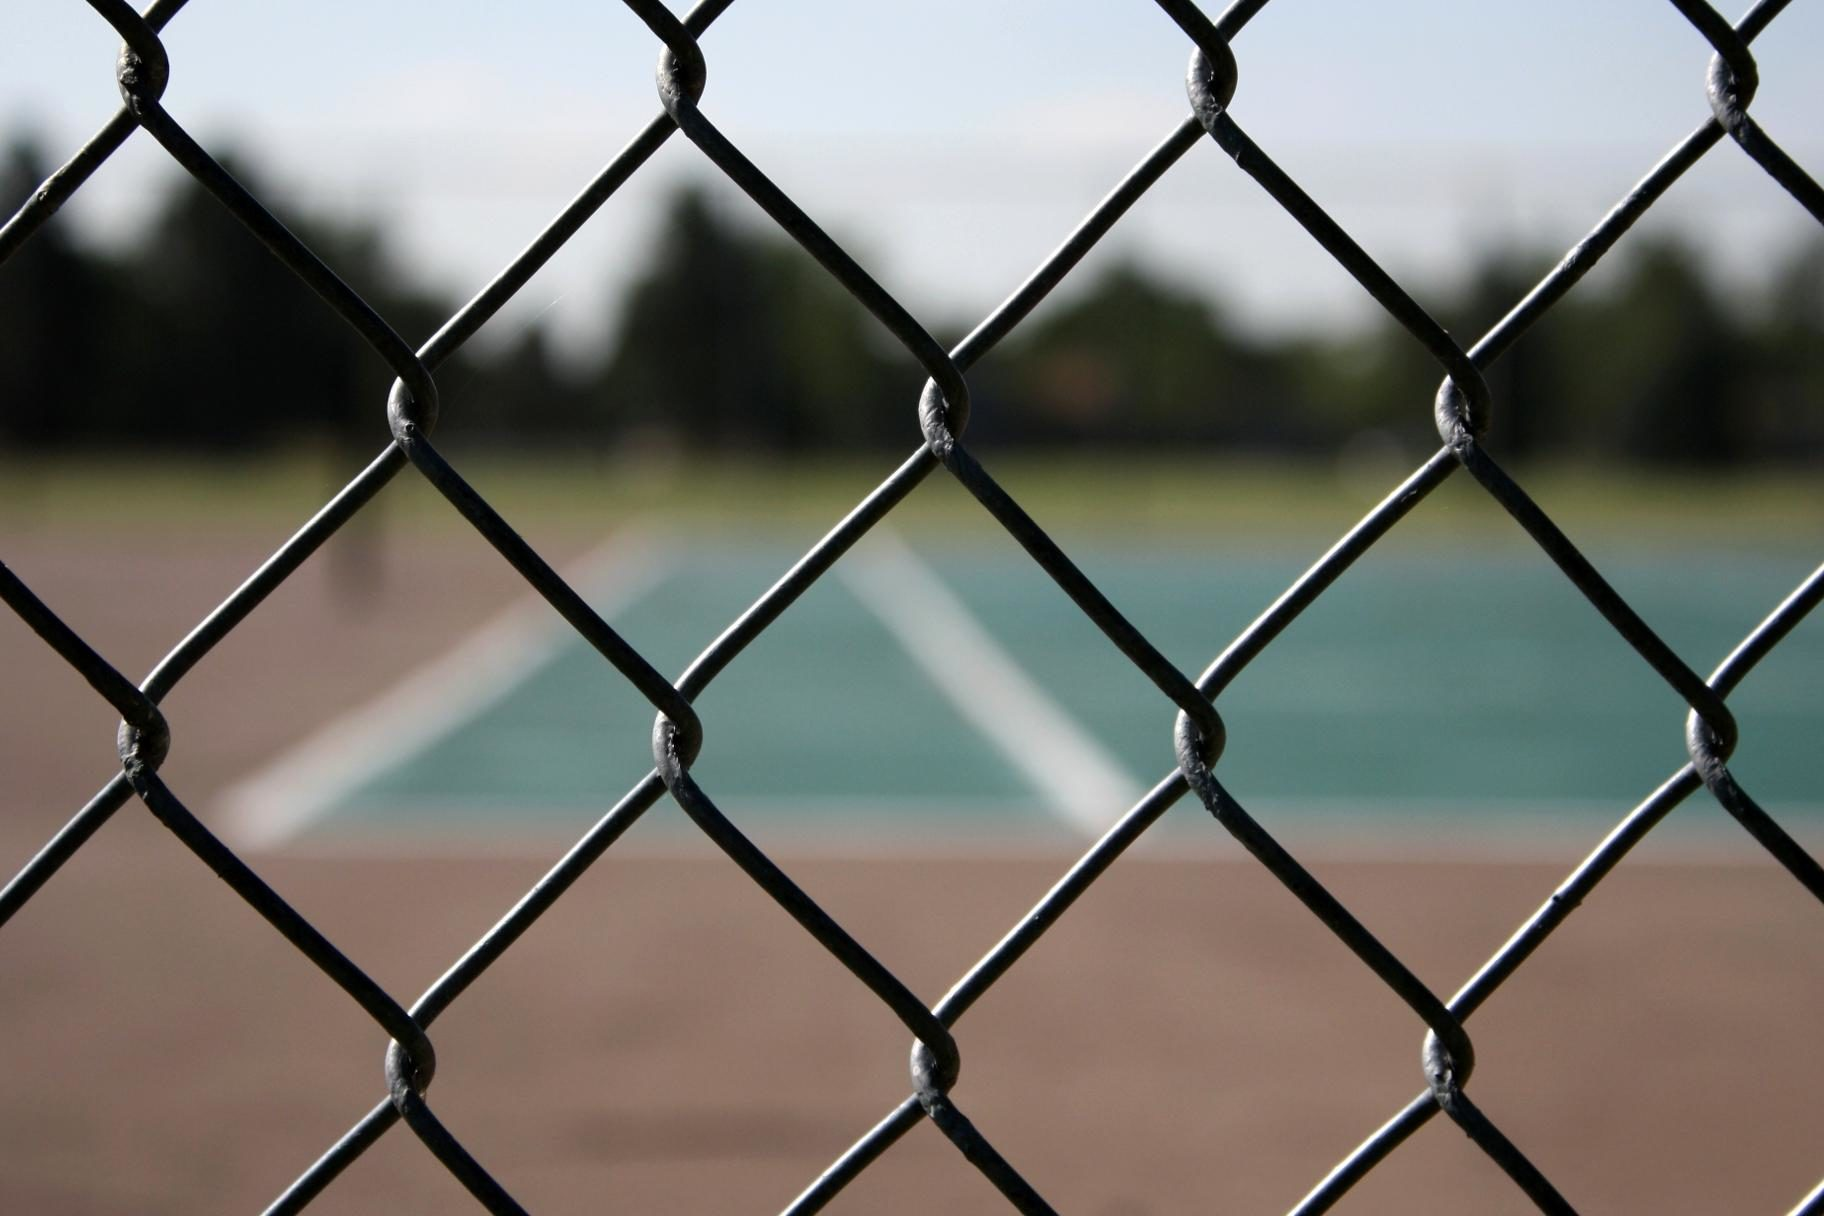 Ground Wire Color >> Free picture: wire fence, metal fence, tennis court